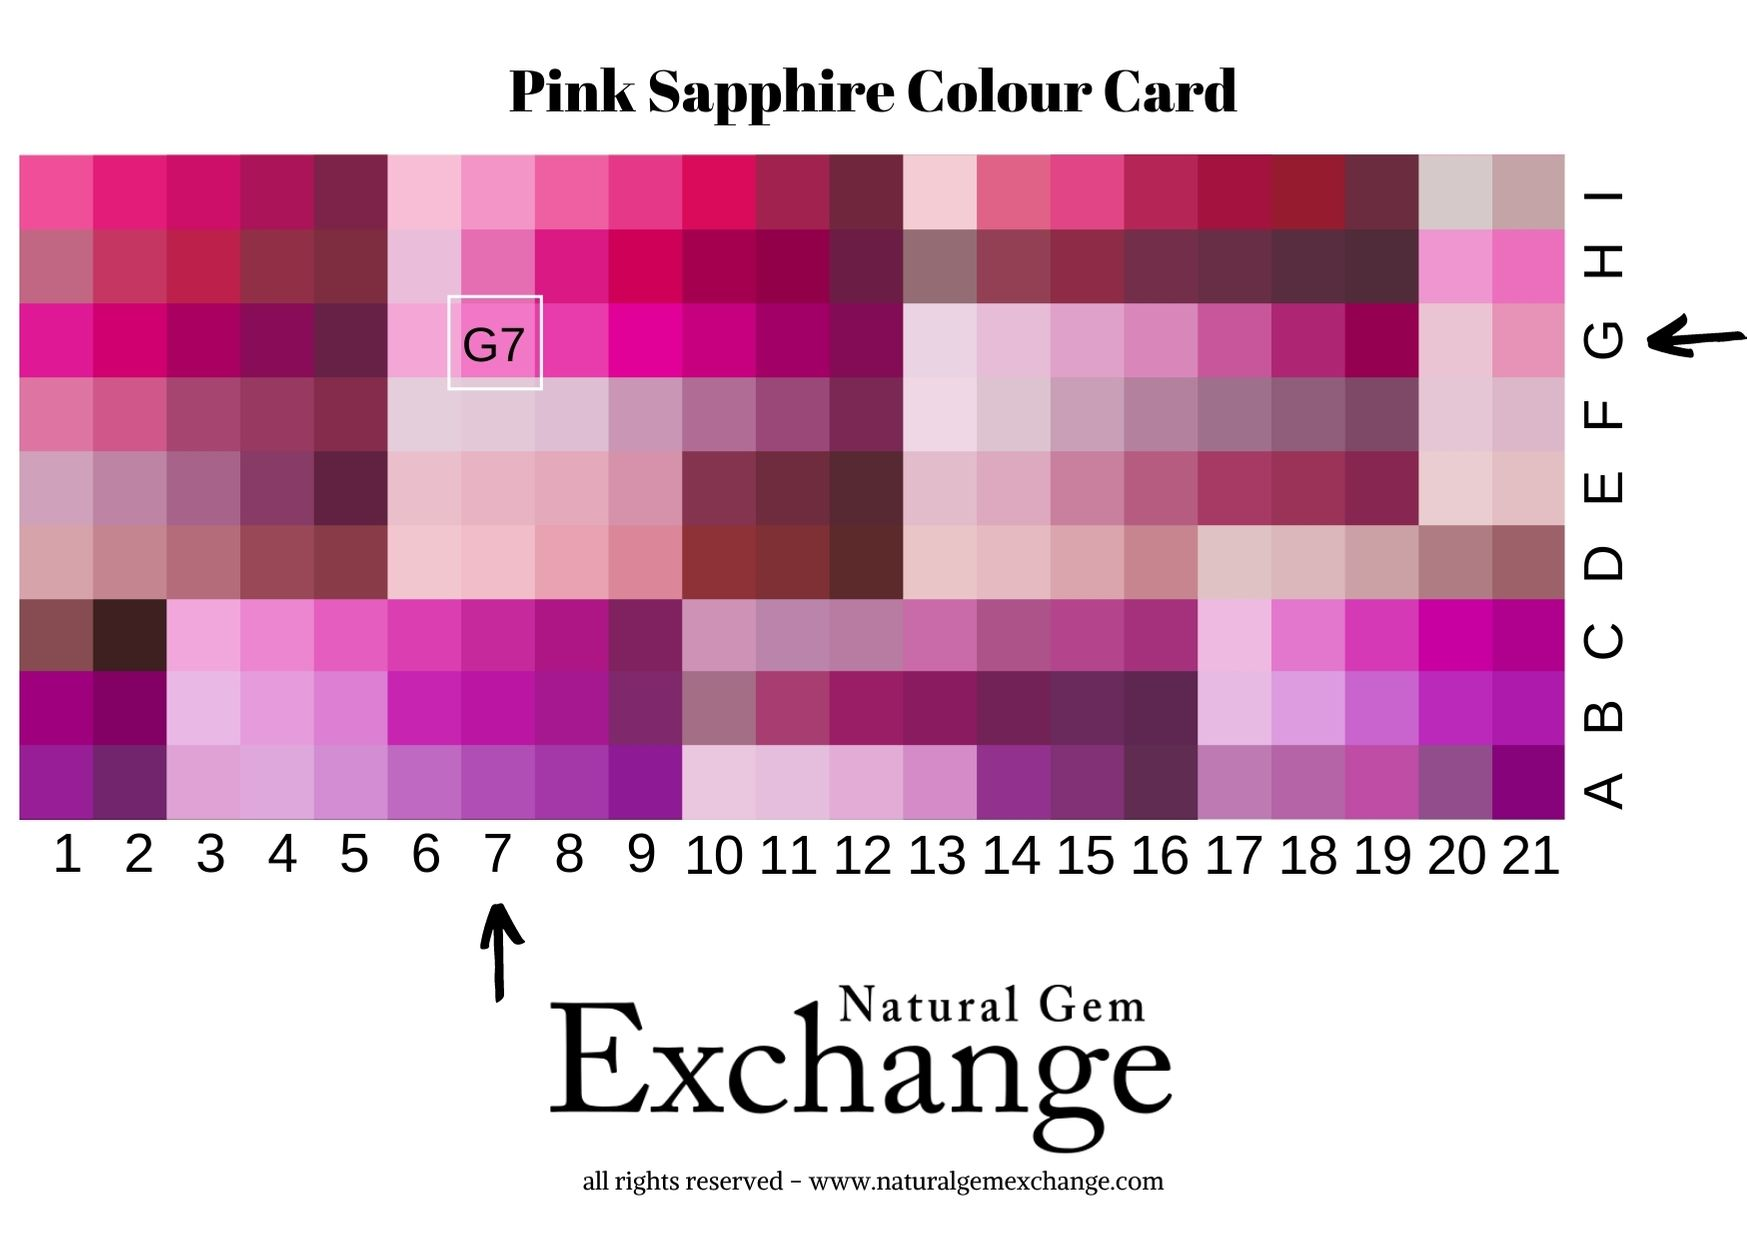 Pink Sapphire Colour Card from the Natural Gem Exchange